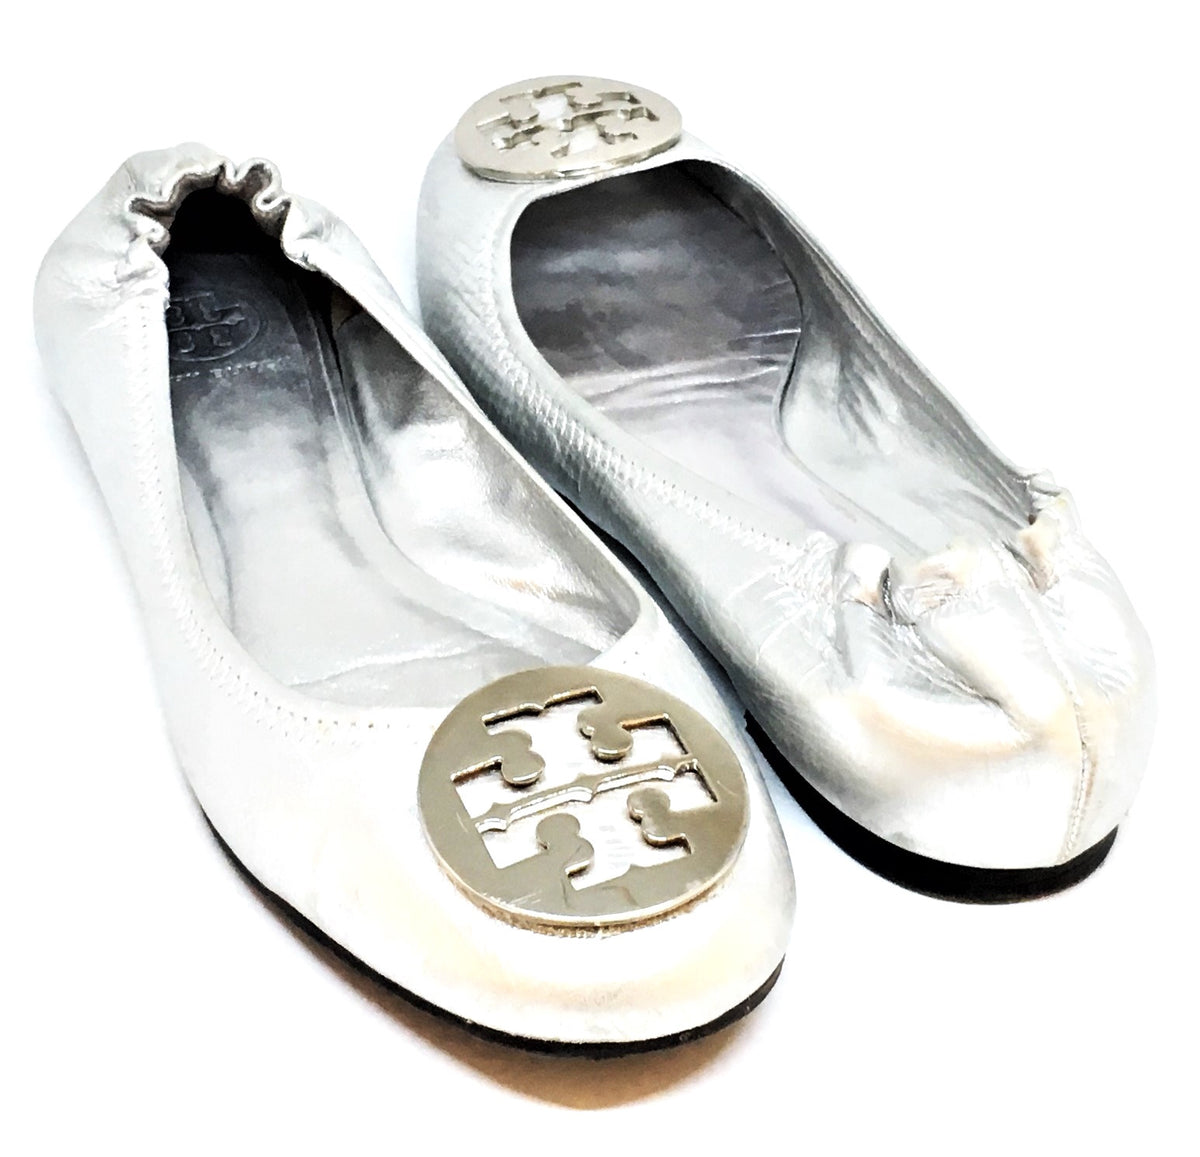 ab2abed1ee6 Tory Burch REVA Silver Leather Ballet Flats